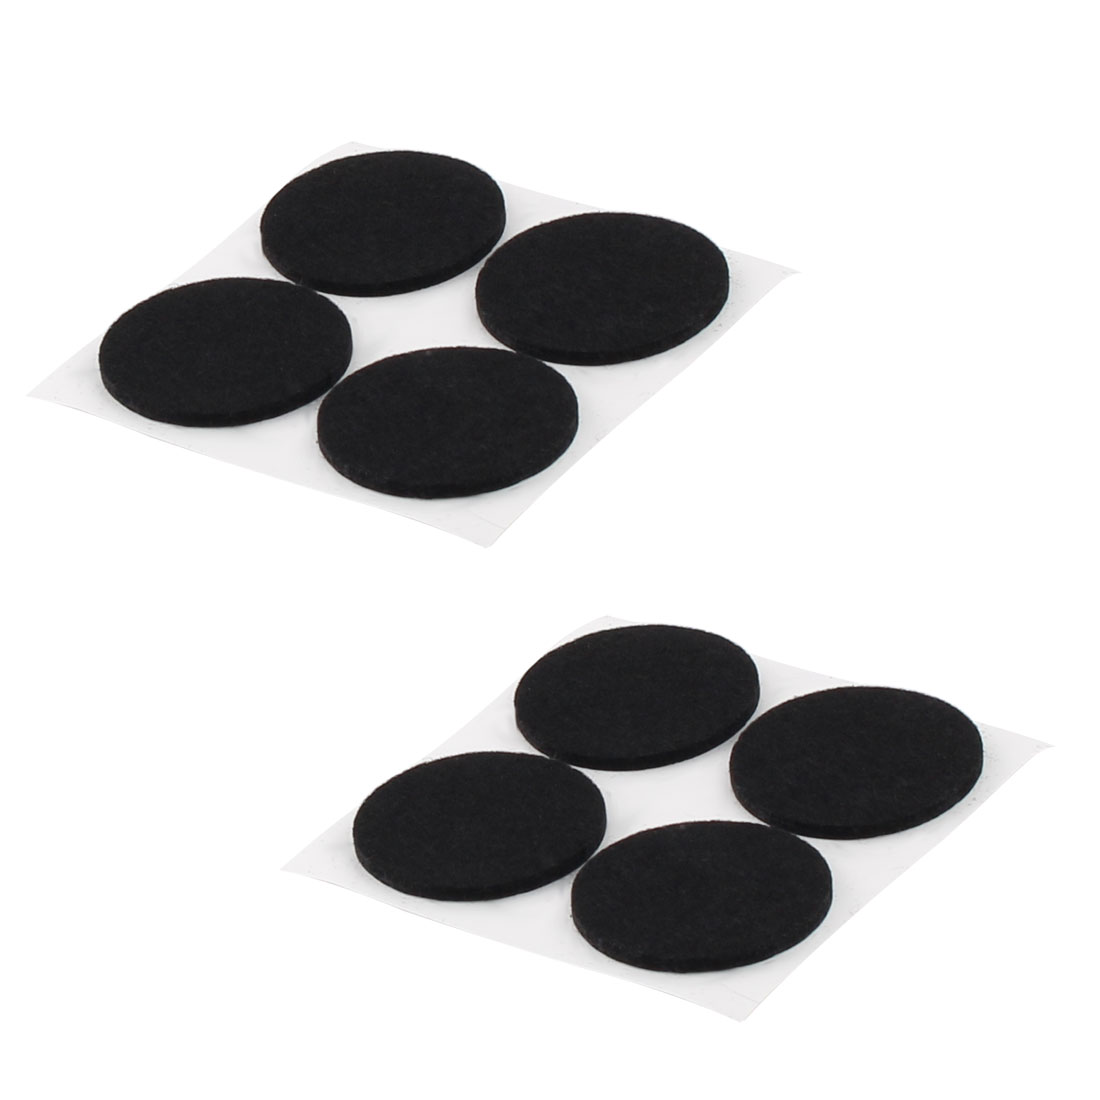 Cabinet Chair Desk Legs Self Stick Surface Protect Furniture Felt Pads Cushions Black 38mm Diameter 8pcs